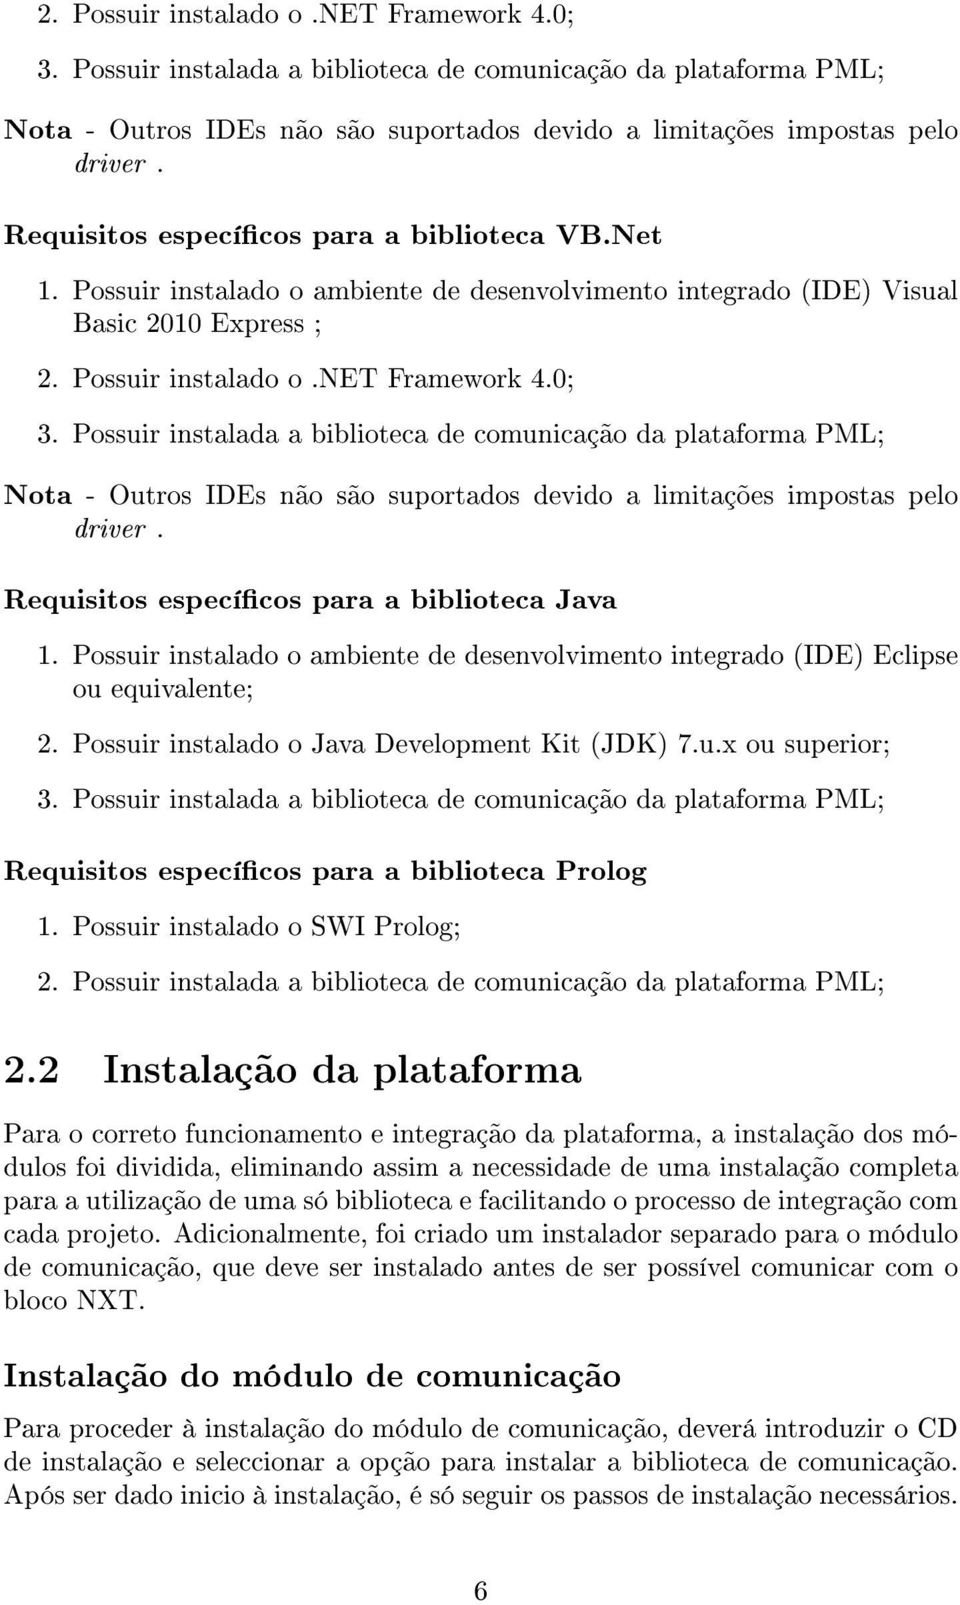 Possuir instalado o ambiente de desenvolvimento integrado (IDE) Eclipse ou equivalente; 2. Possuir instalado o Java Development Kit (JDK) 7.u.x ou superior; 3.